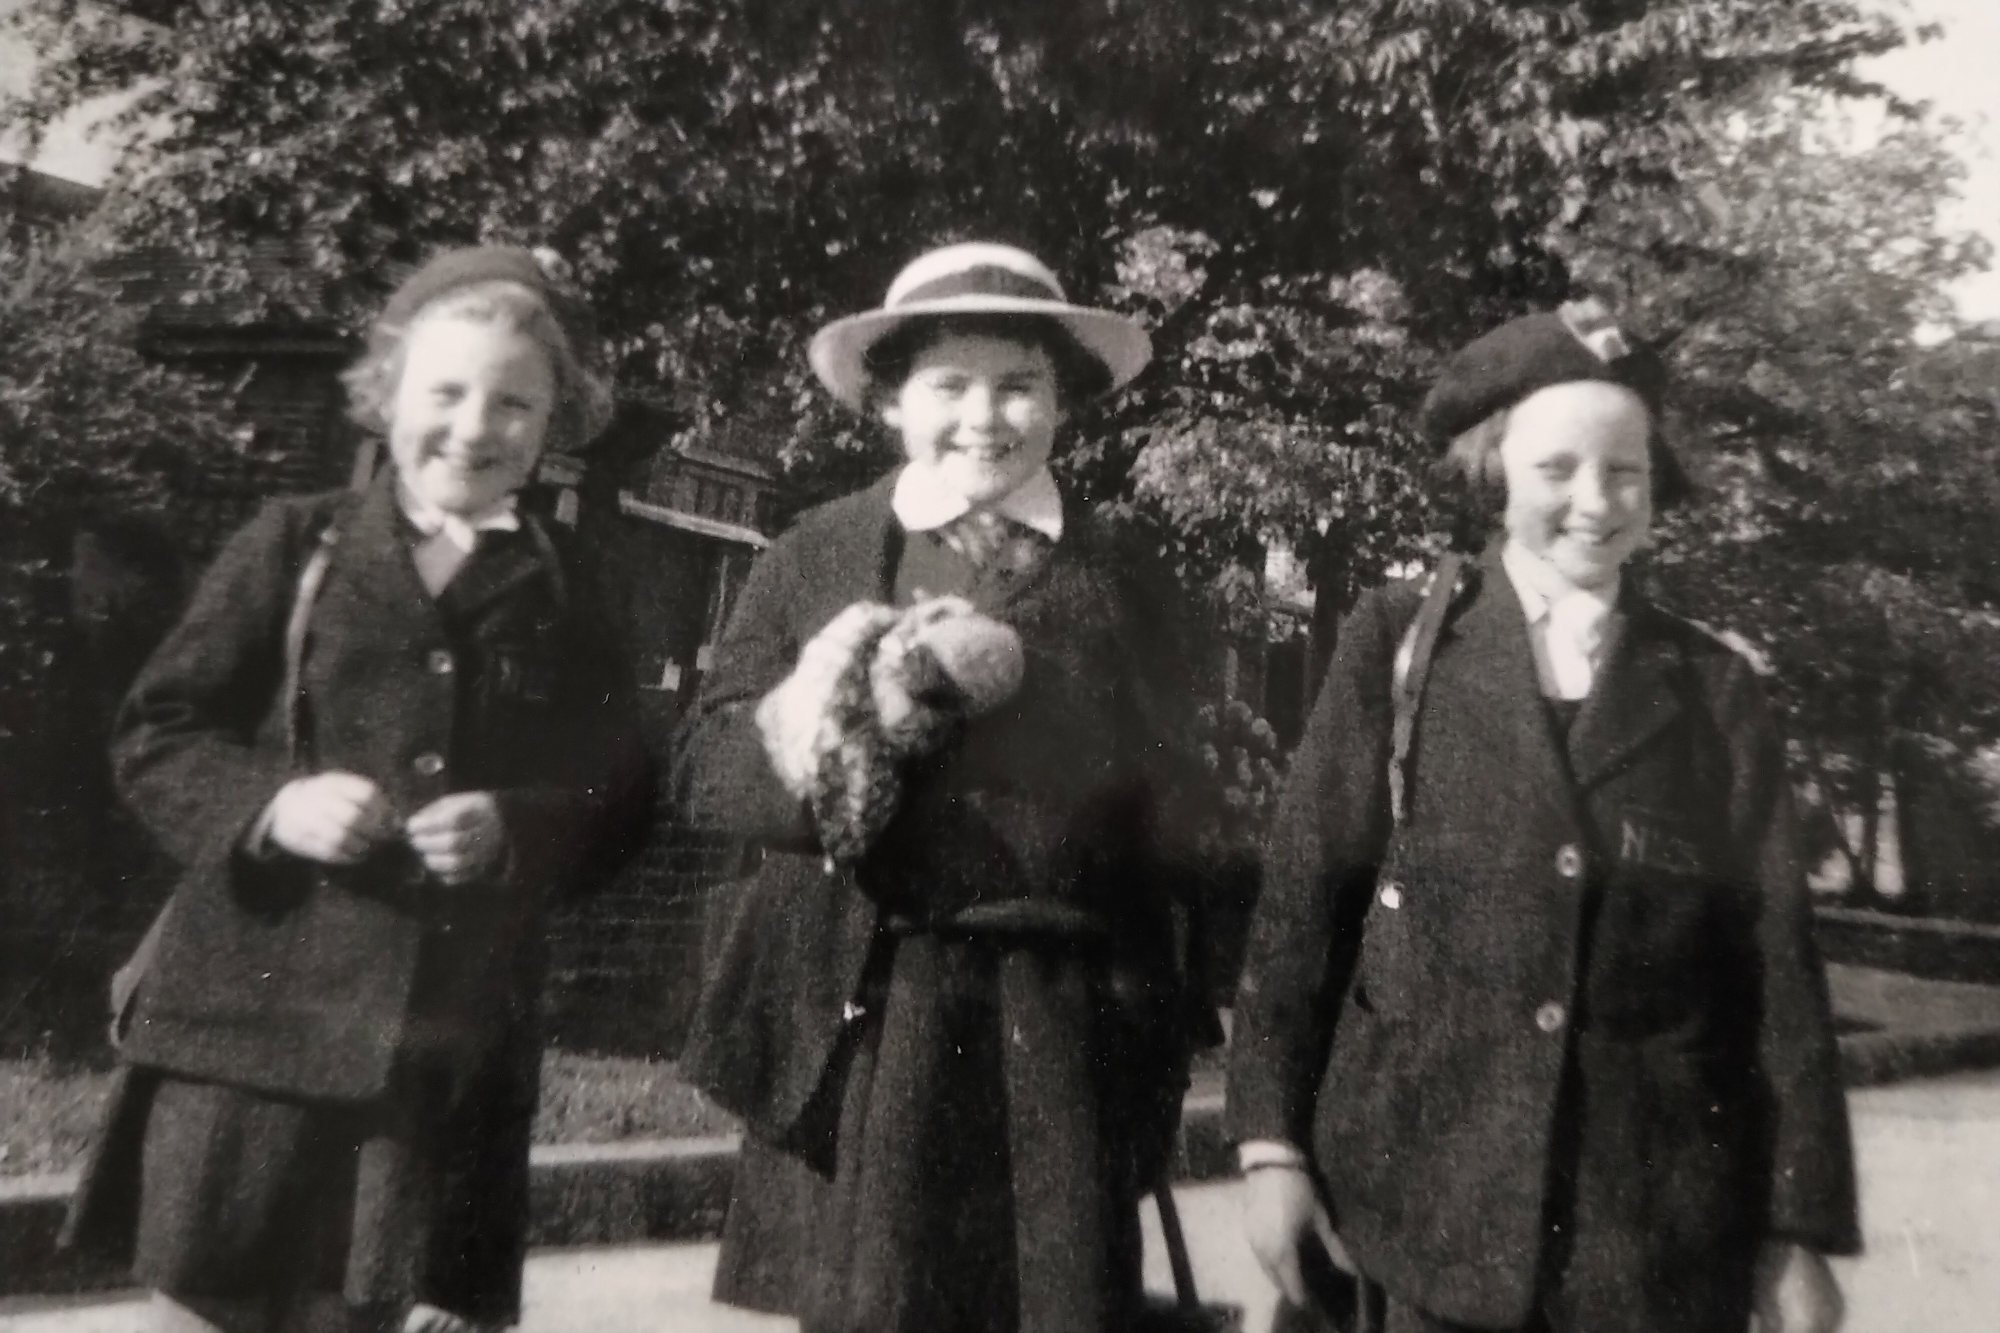 Goodwin (centre) while at school in Britain. Photo: courtesy of Elaine Goodwin